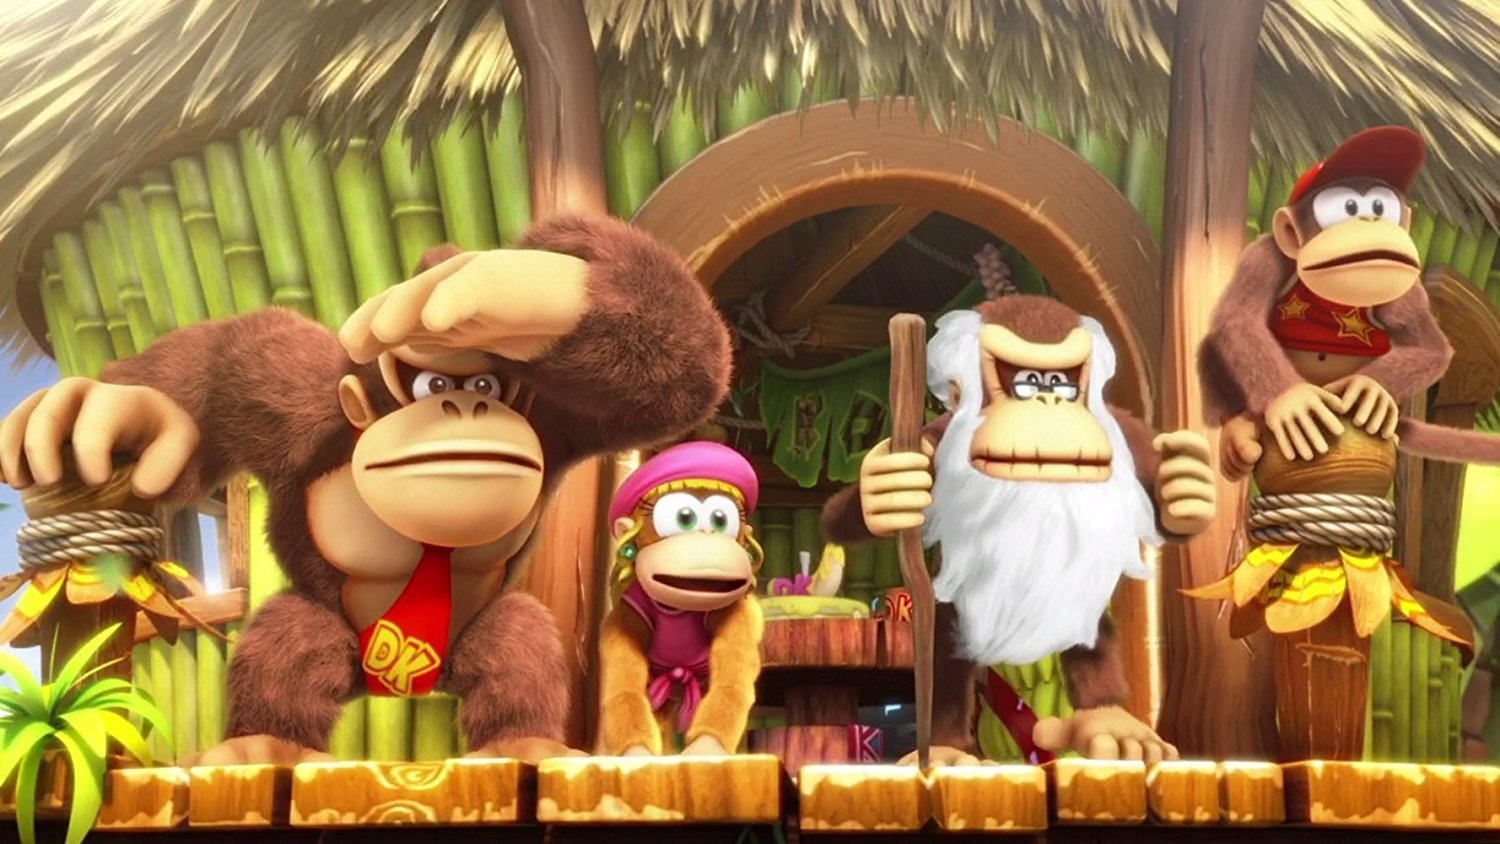 Donkey Kong - Tropical Freeze - Nintendo Switch